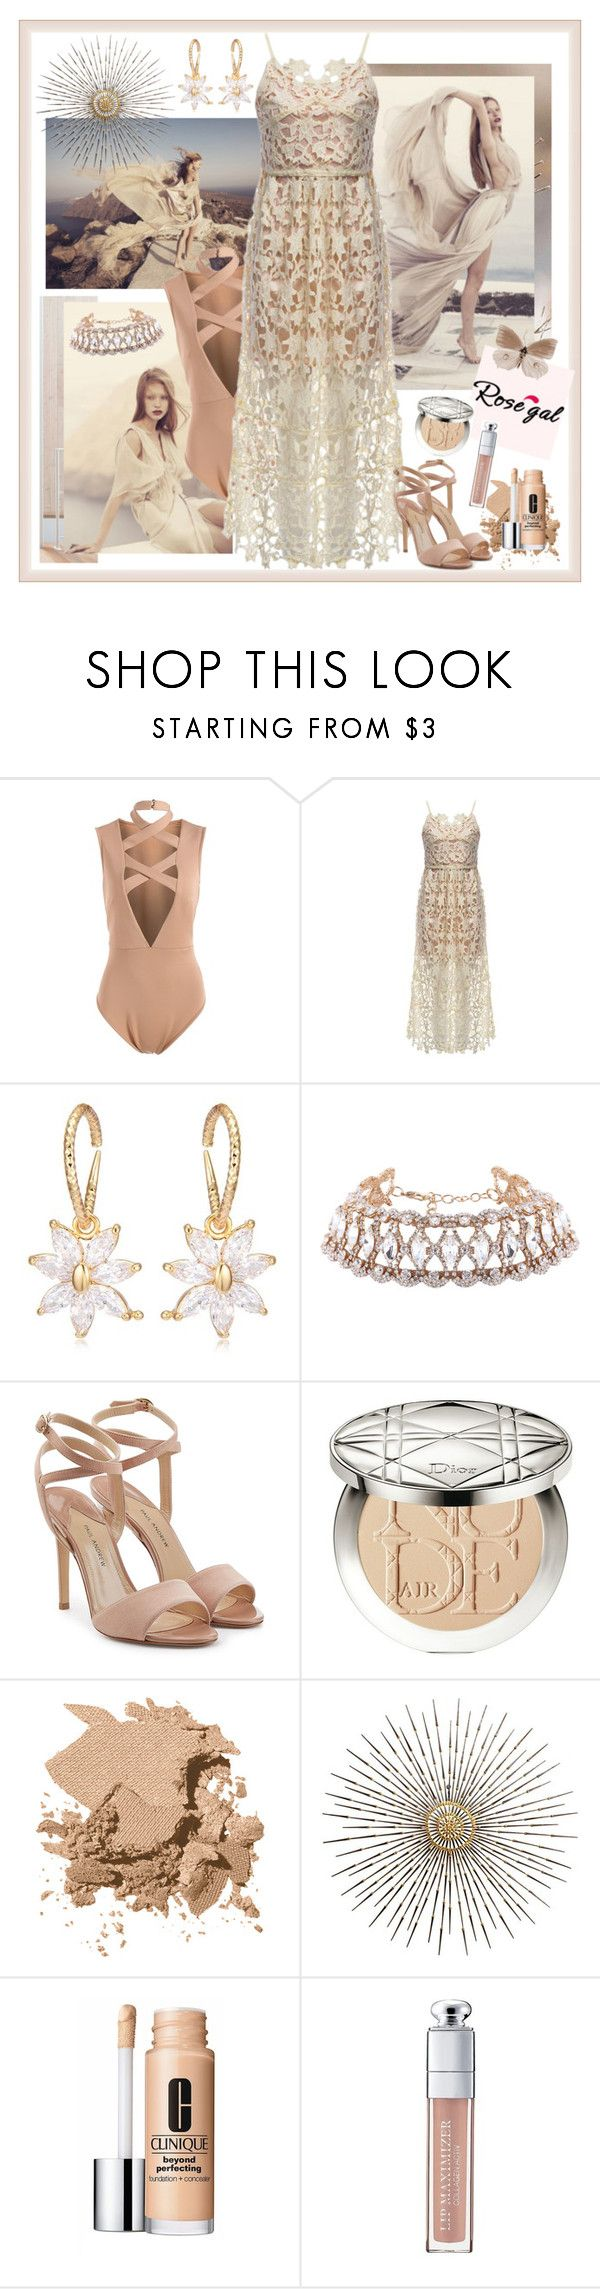 """Rosegal Spaghetti Strap Dress"" by carola-corana ❤ liked on Polyvore featuring Paul Andrew, Christian Dior, Bobbi Brown Cosmetics and Clinique"